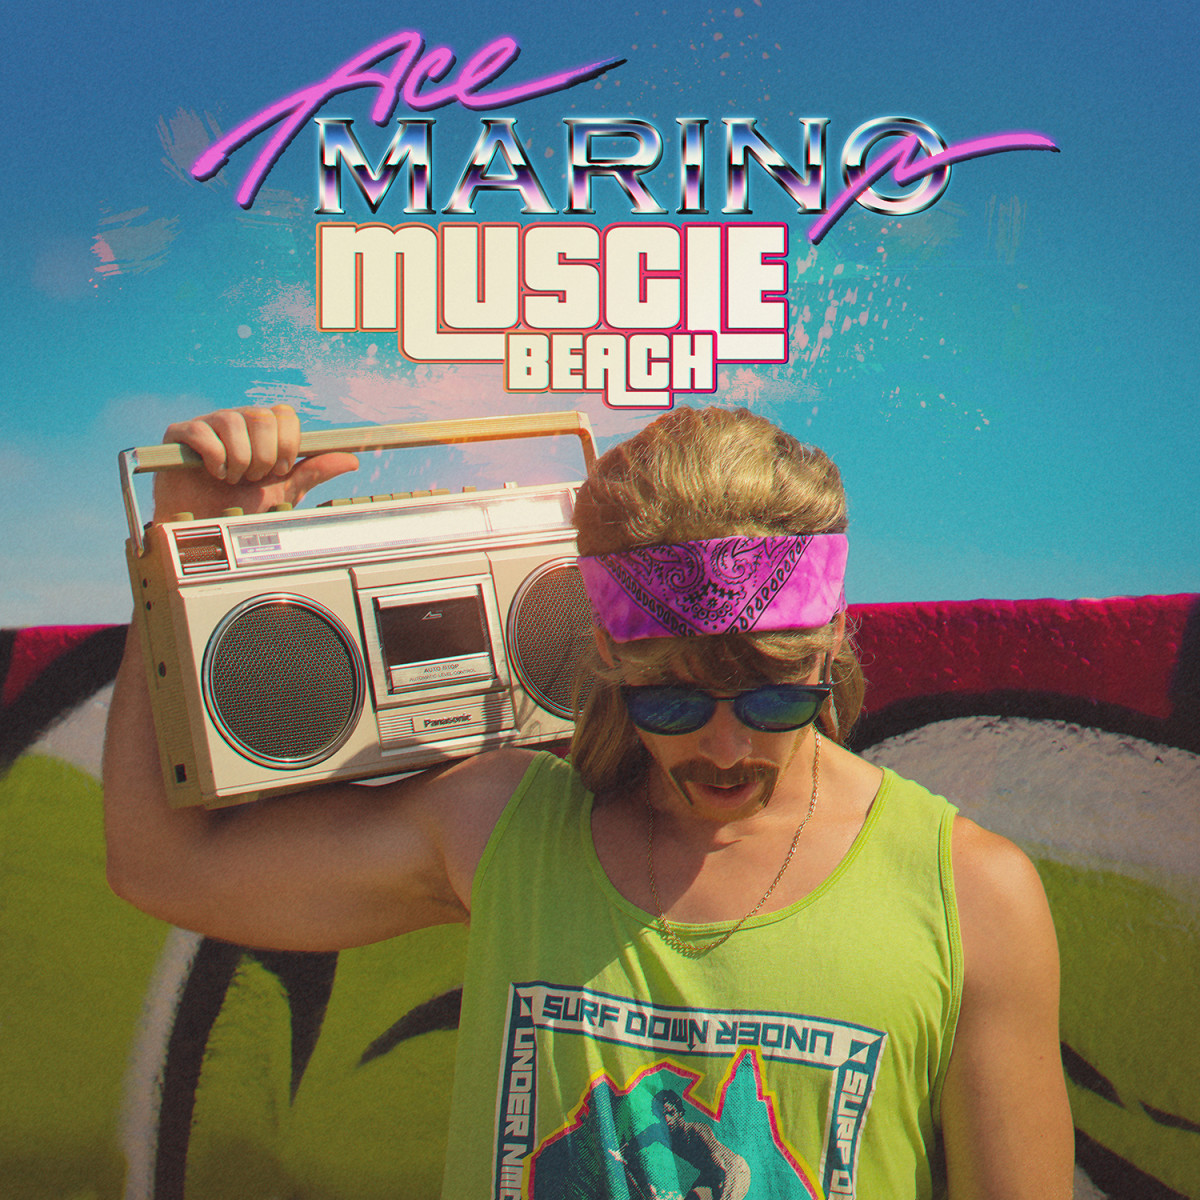 Ace Marino - Muscle Beach (Album Artwork)